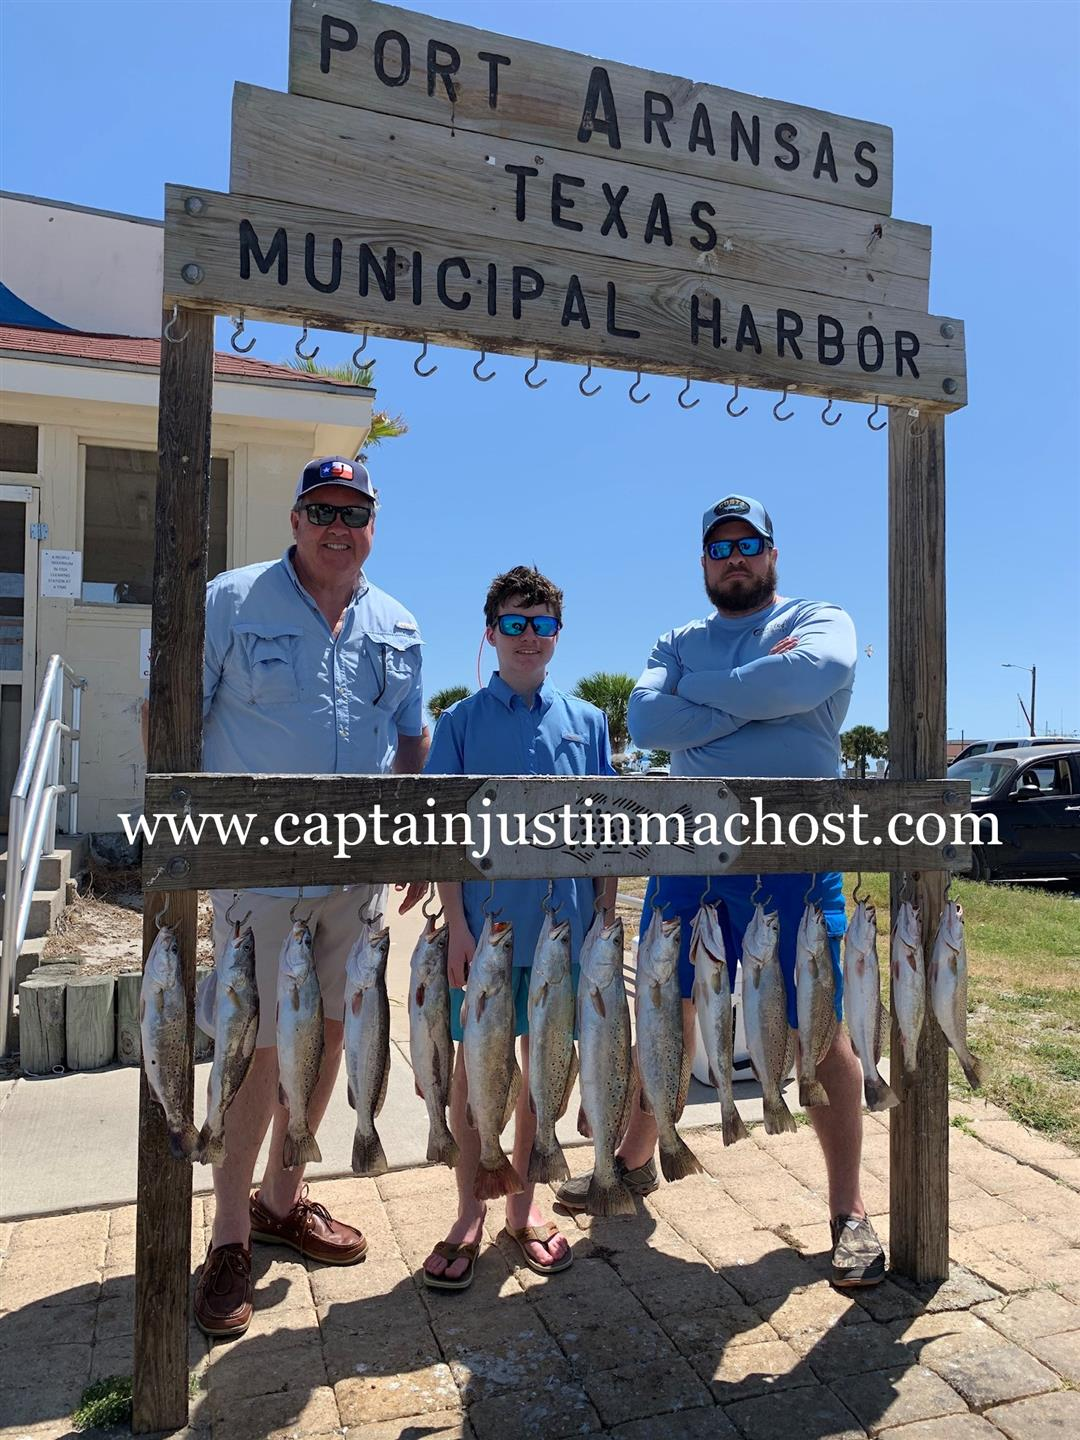 2 Men and a Younger Boy in front of the Port Arkansas Texas Municipal Harbor after fishing